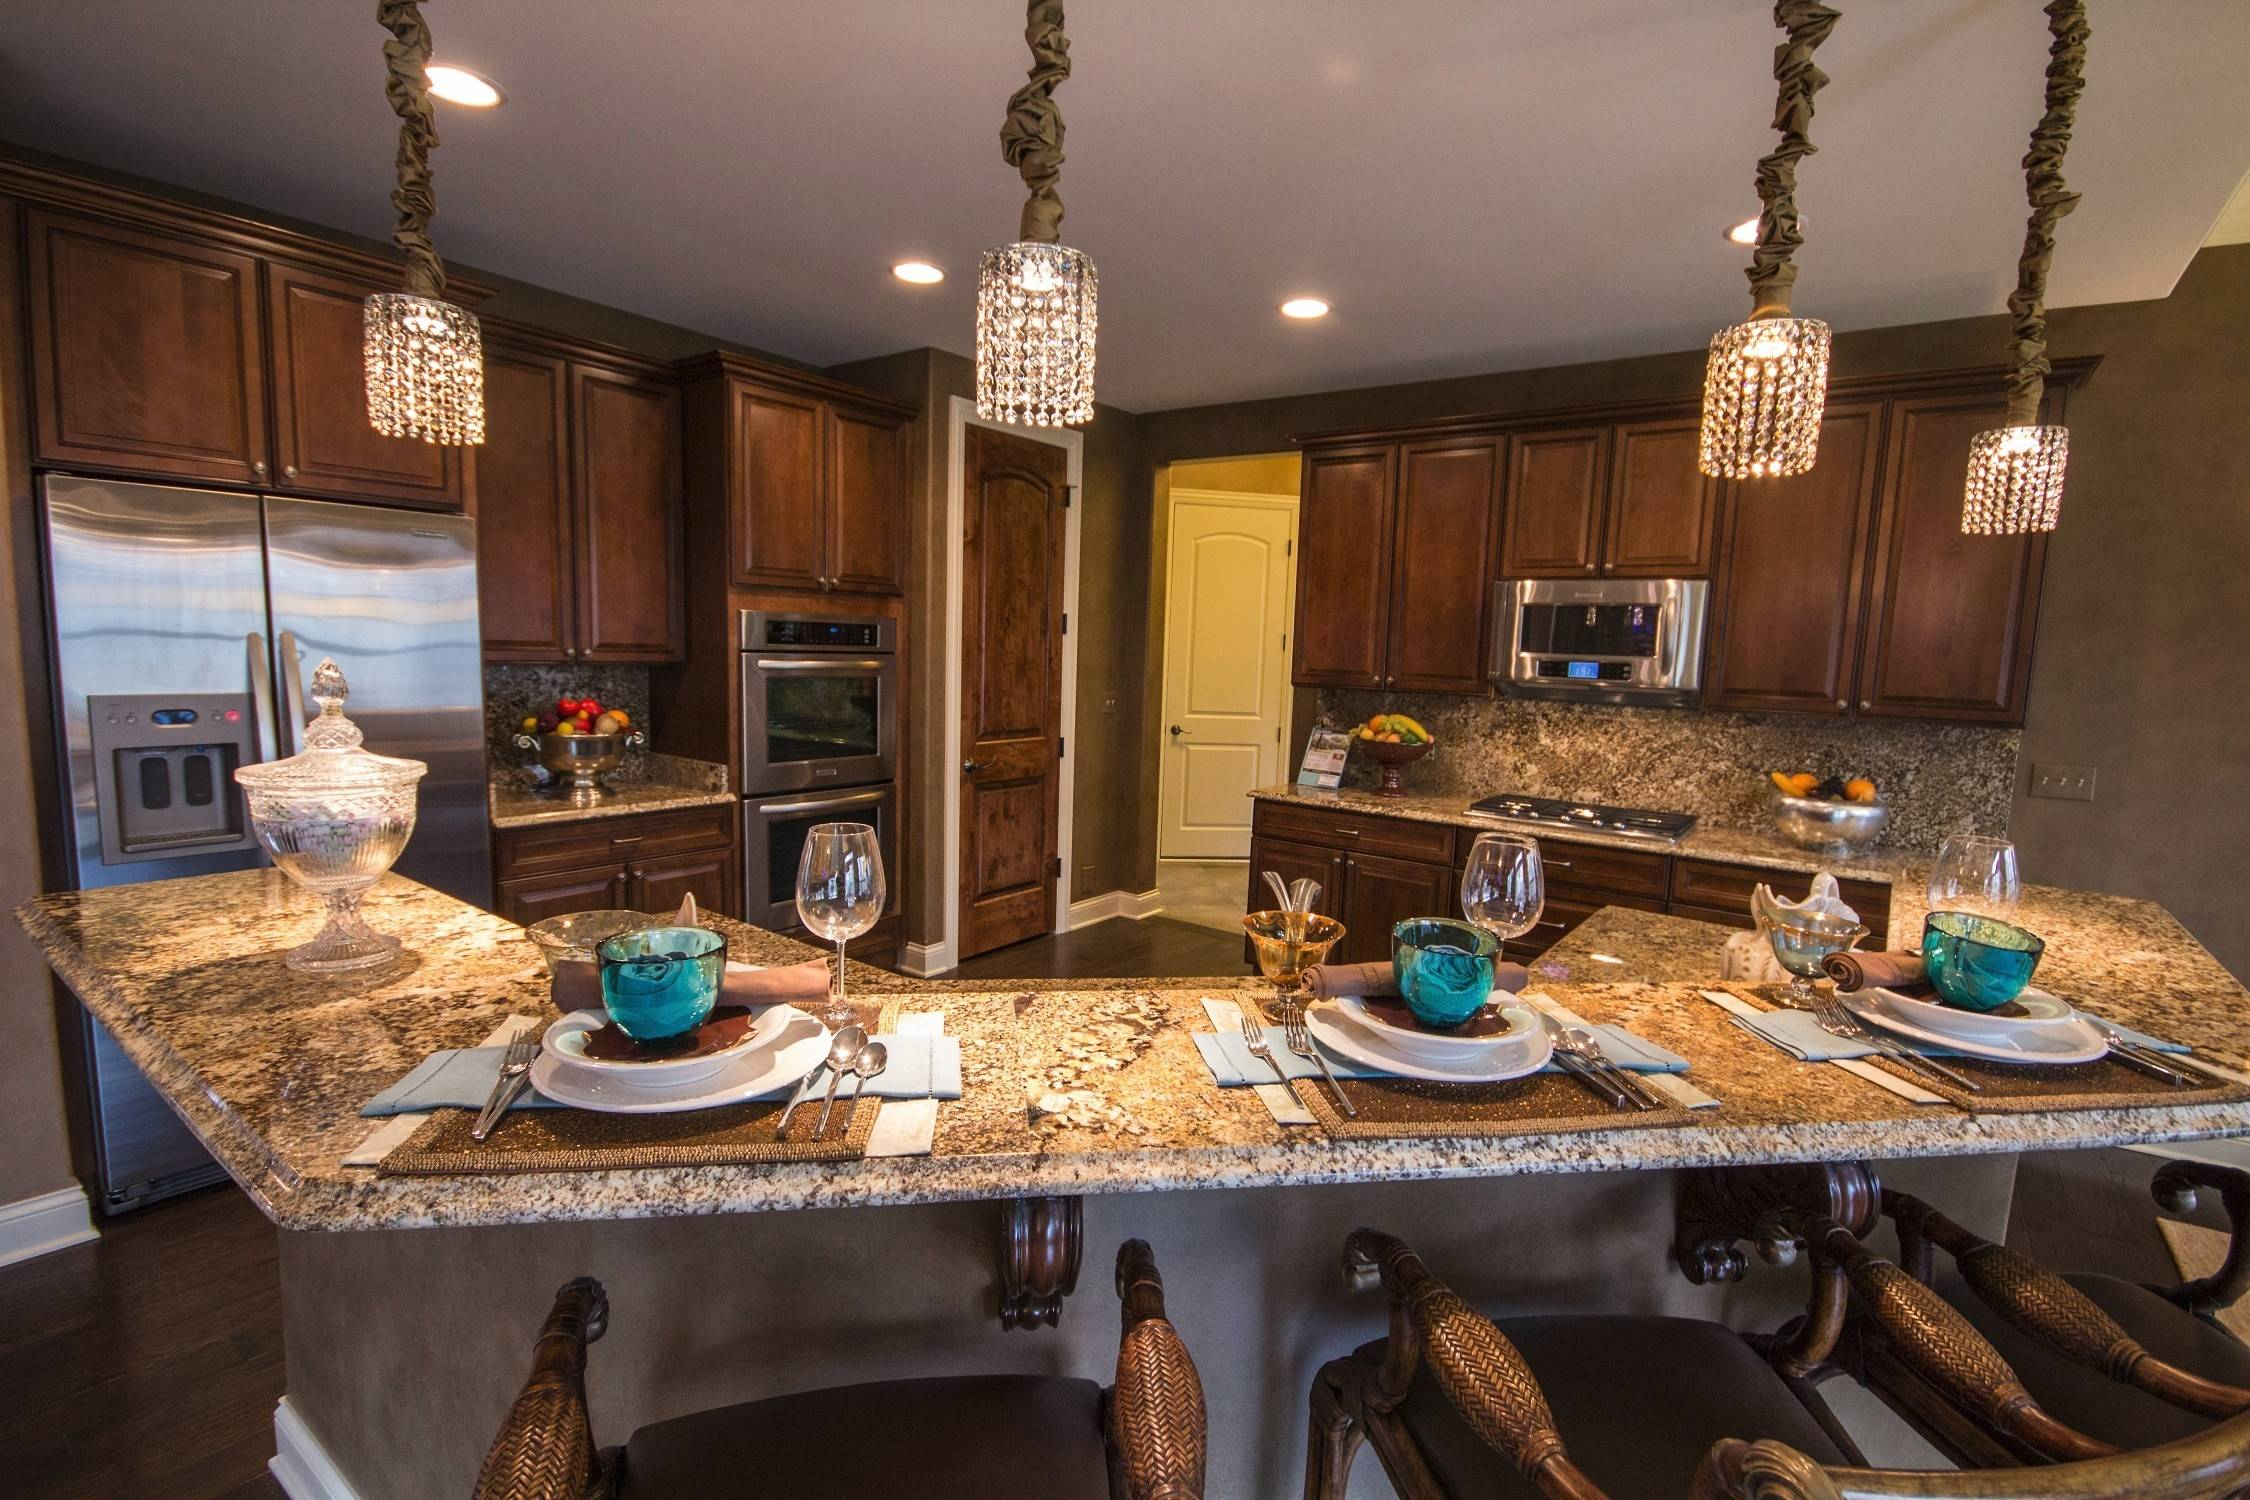 KLM Builders features a palette of warm earth tones in its Sonoma model, a popular ranch plan at Thousand Oaks in Spring Grove.